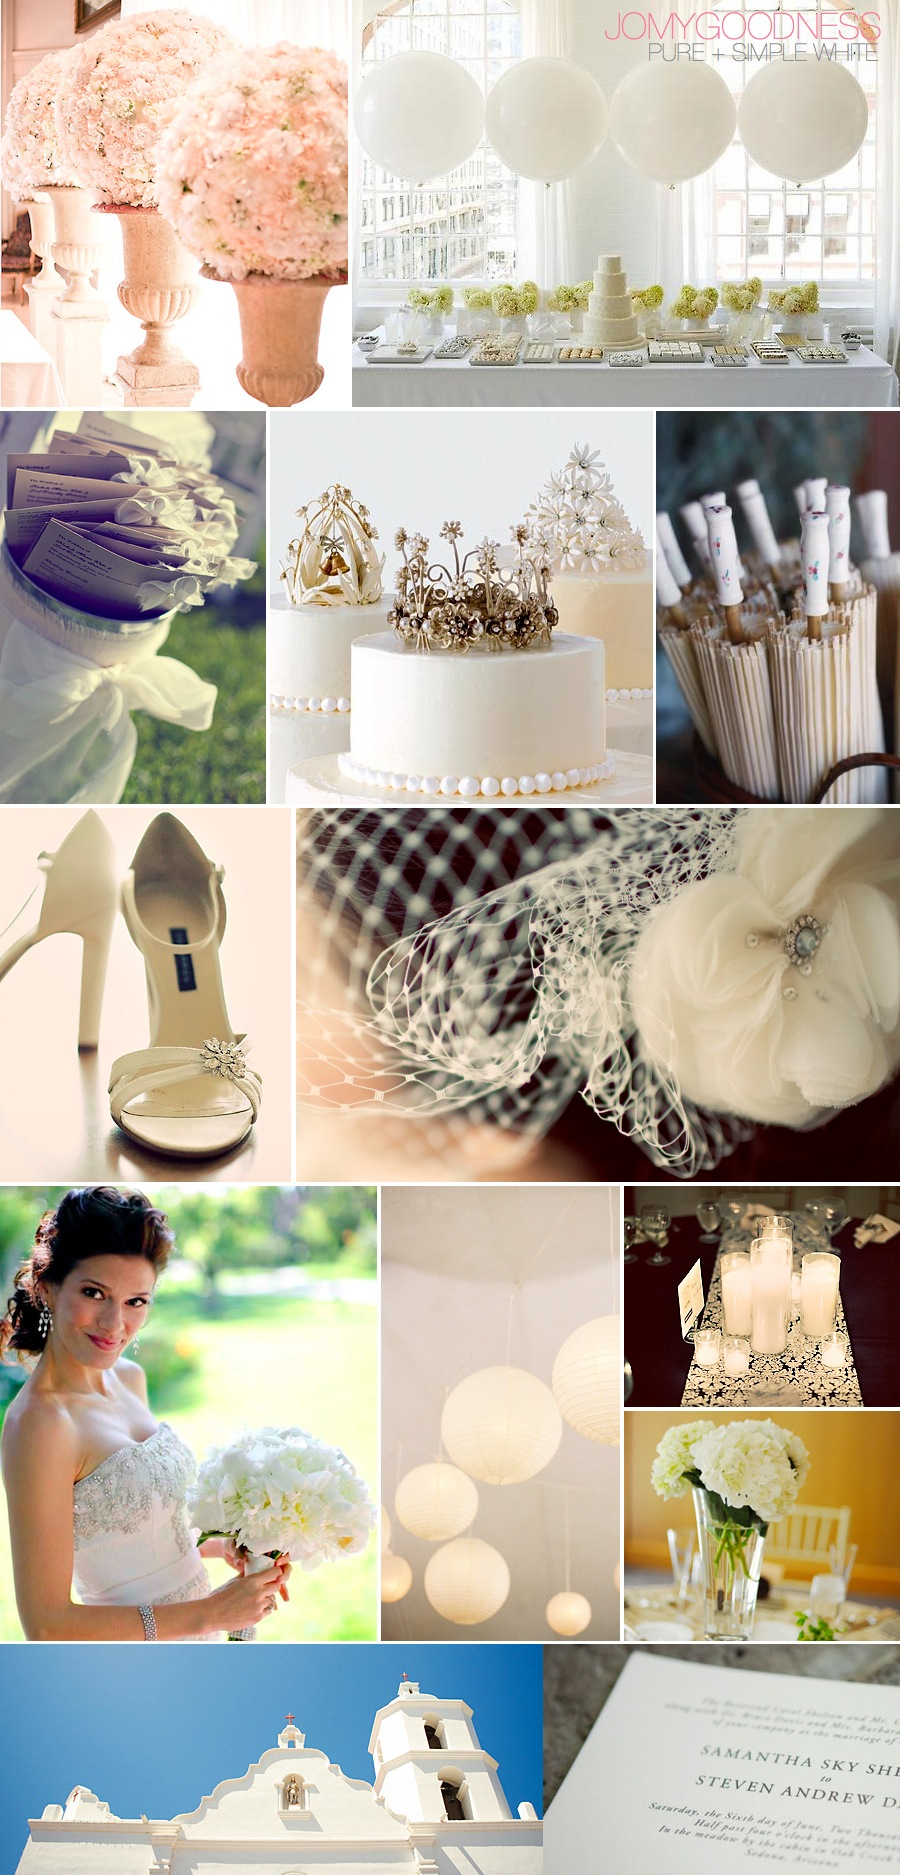 pure-simple-white-wedding-color-palette1.jpg